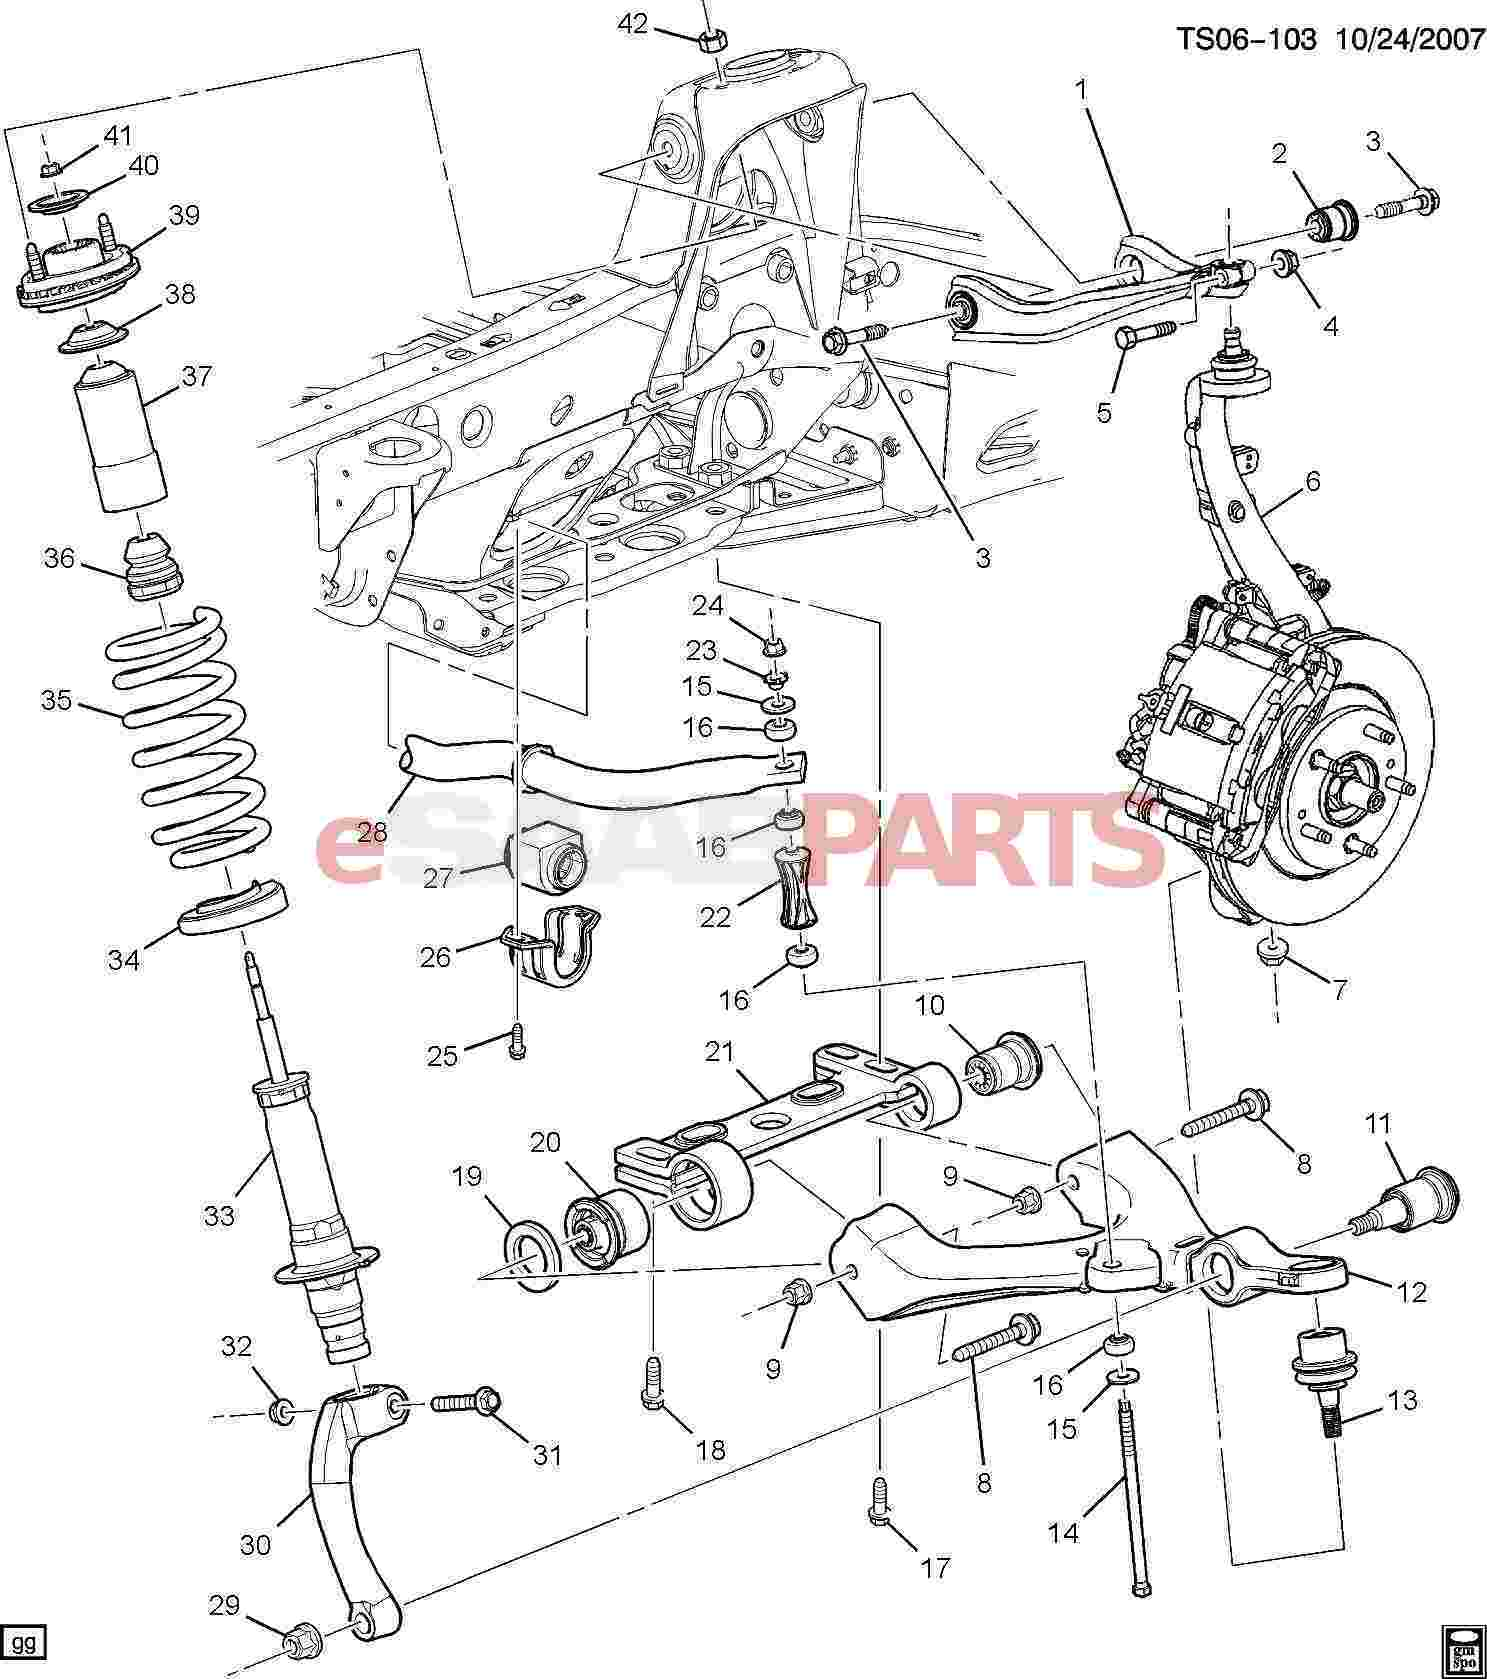 Saturn Fuel Pump Diagram Manual Of Wiring 2002 Sl1 2005 Saab 9 3 Suspension Imageresizertool Com Ion System